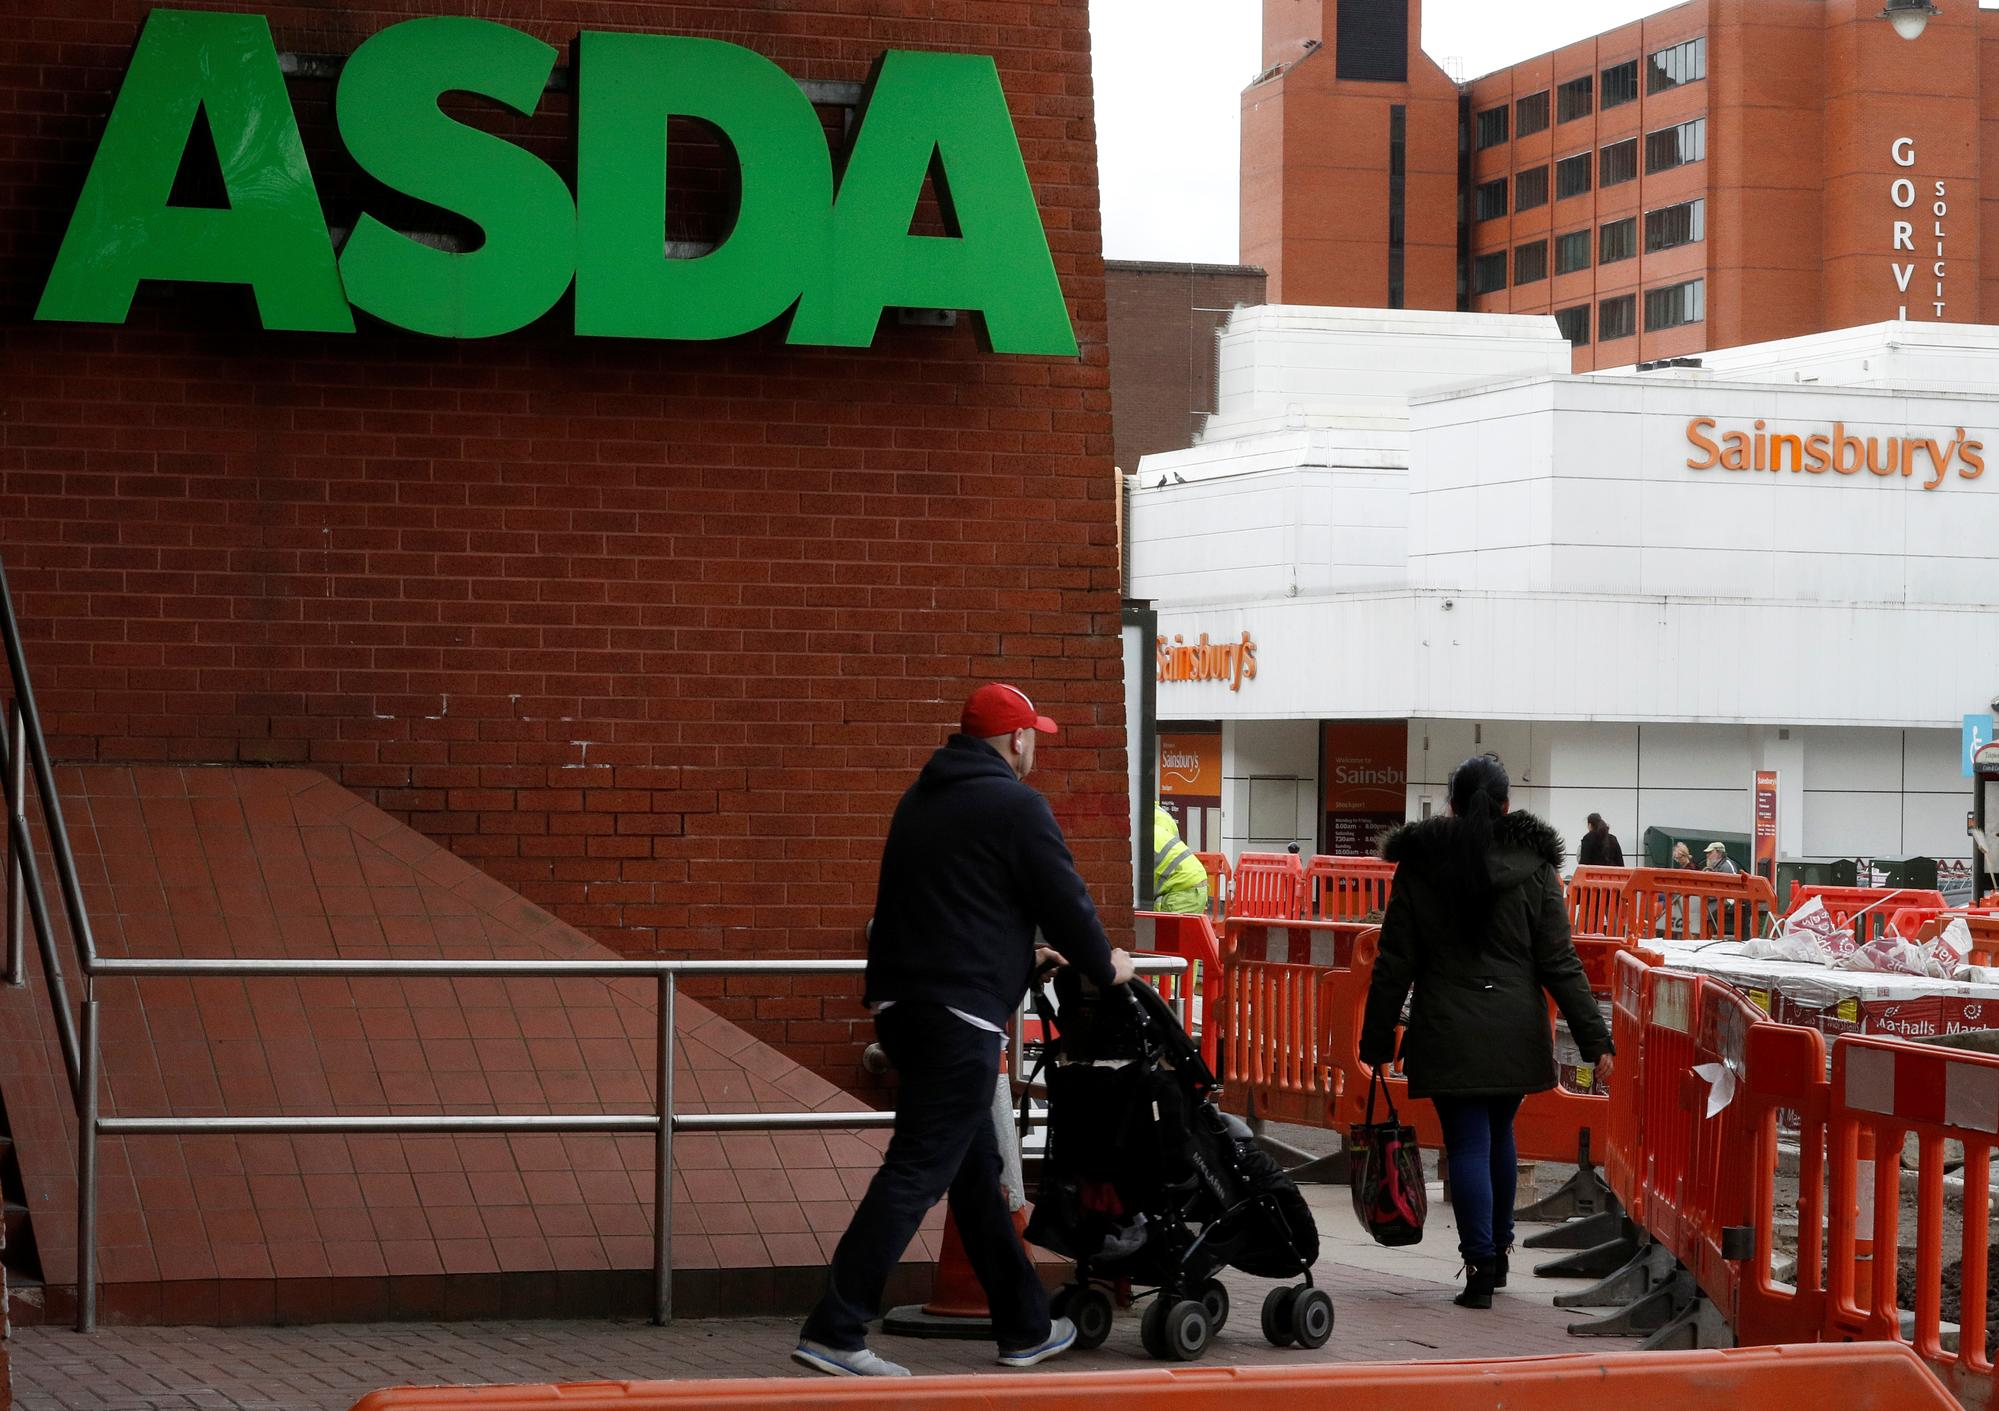 Asda boss sees two-three year horizon for possible IPO